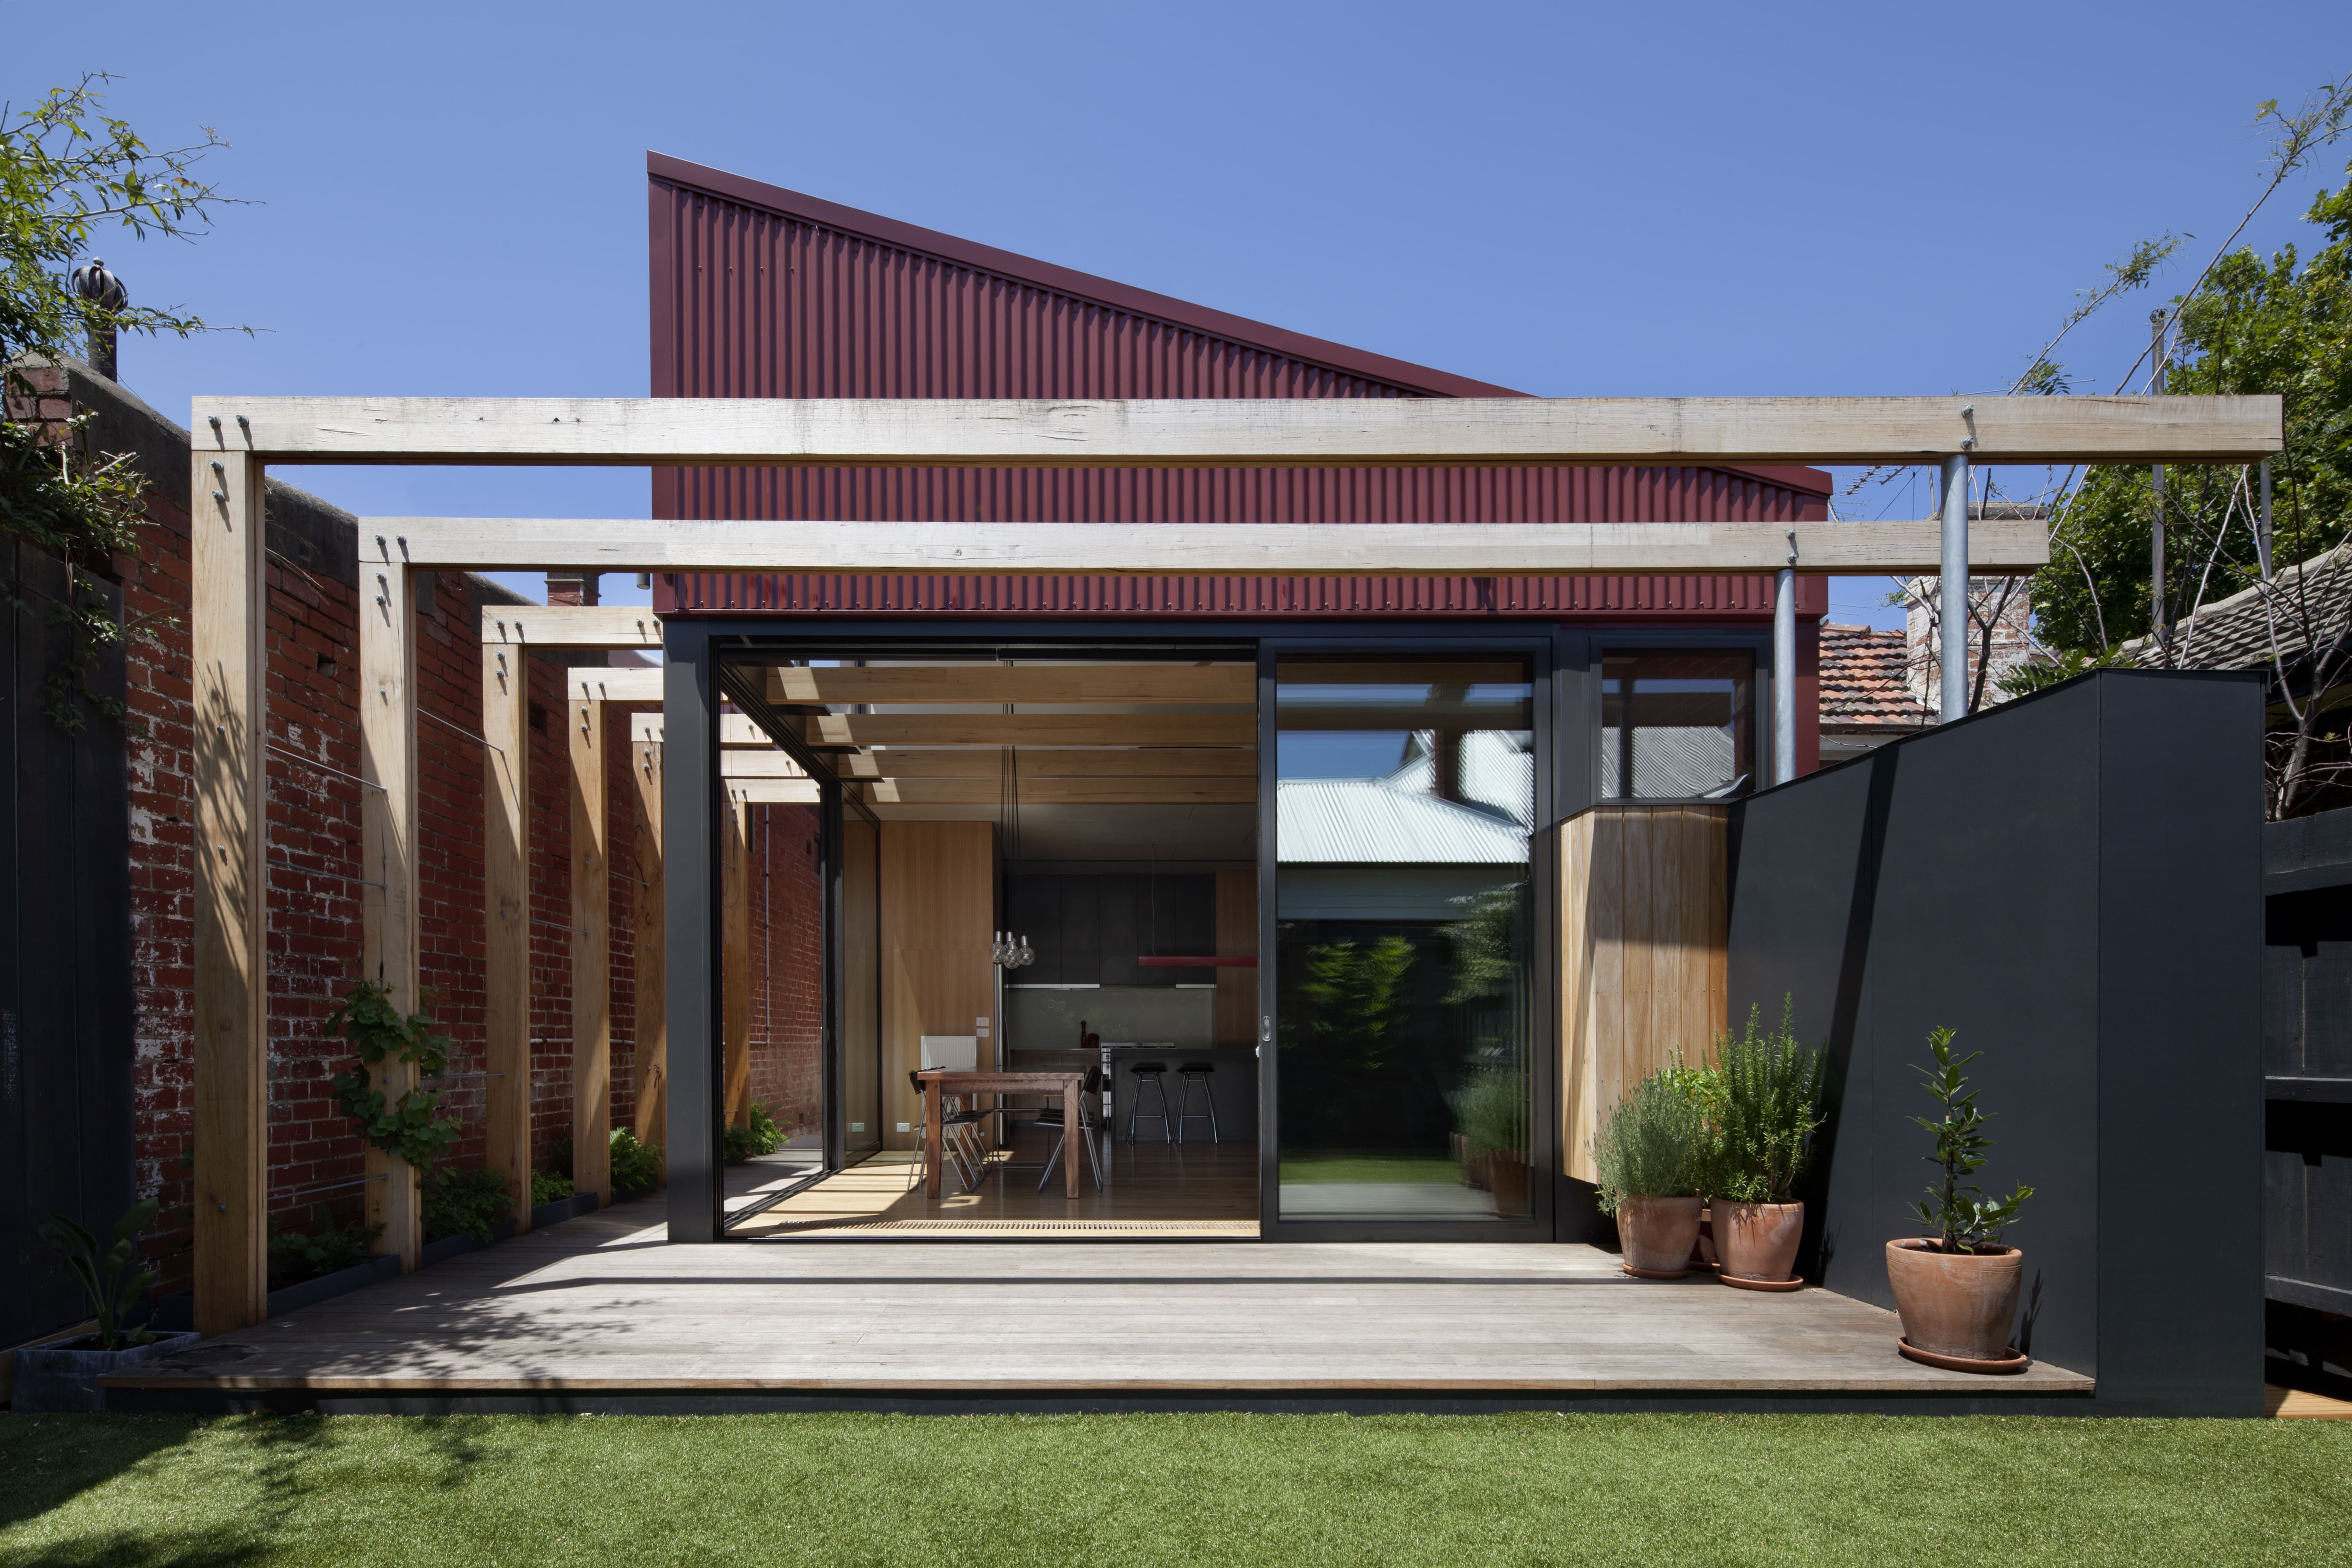 Gallery Of Clifton Hill House By Bent Architecture Local Australian Architecture & Design Melbourne, Vic Image 1